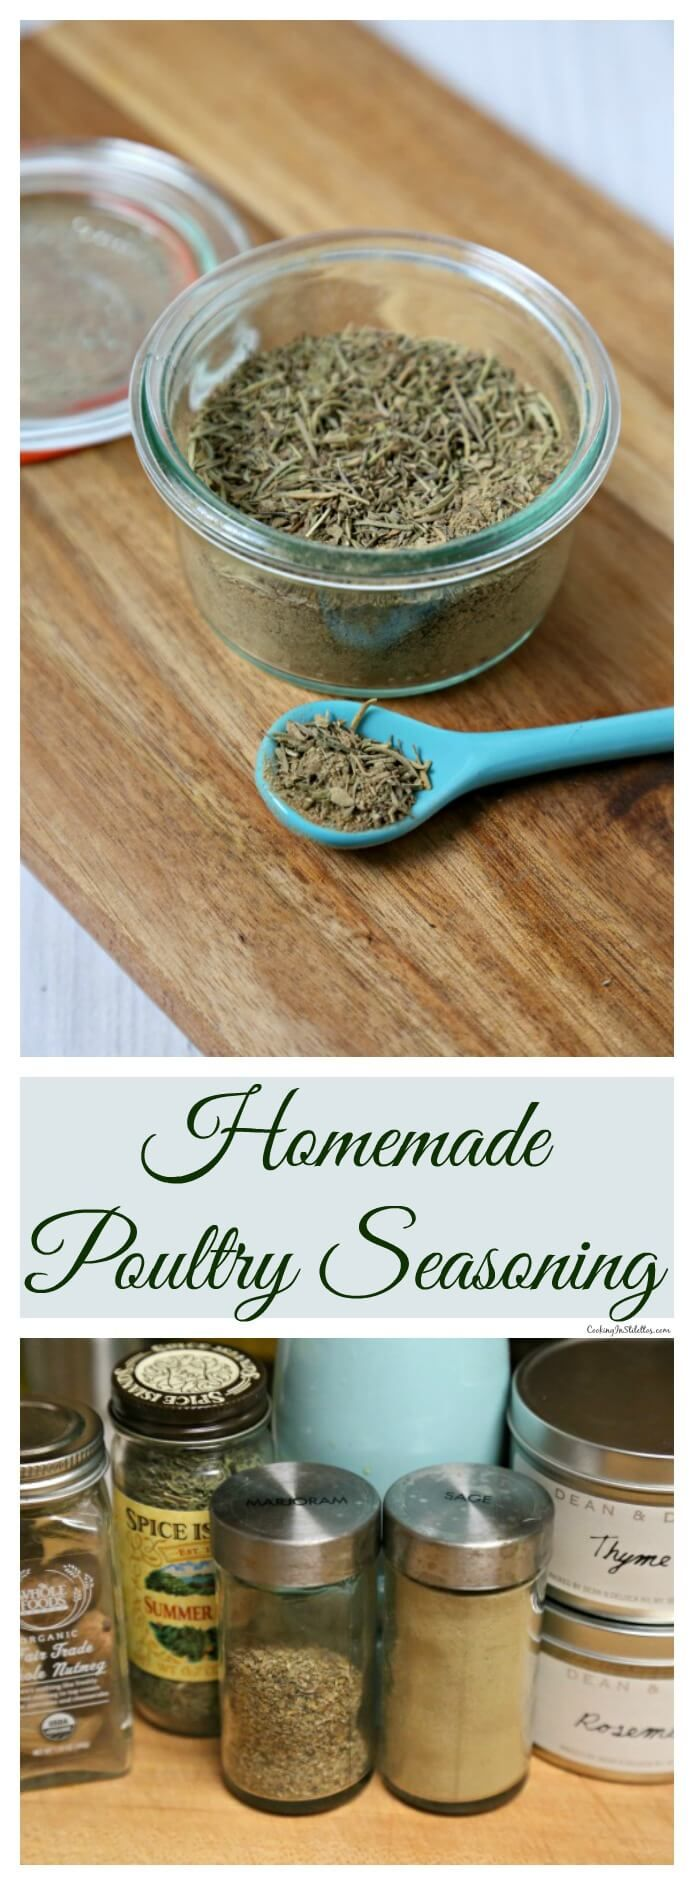 This Homemade Poultry Seasoning from CookingInStilettos.com is so easy to whip up from spices you probably already have on hand in your pantry and is so much better than store-bought!   #PoultrySeasoning | Made from Scratch | Spice Blends | #DIY | #Spices  via @CookInStilettos